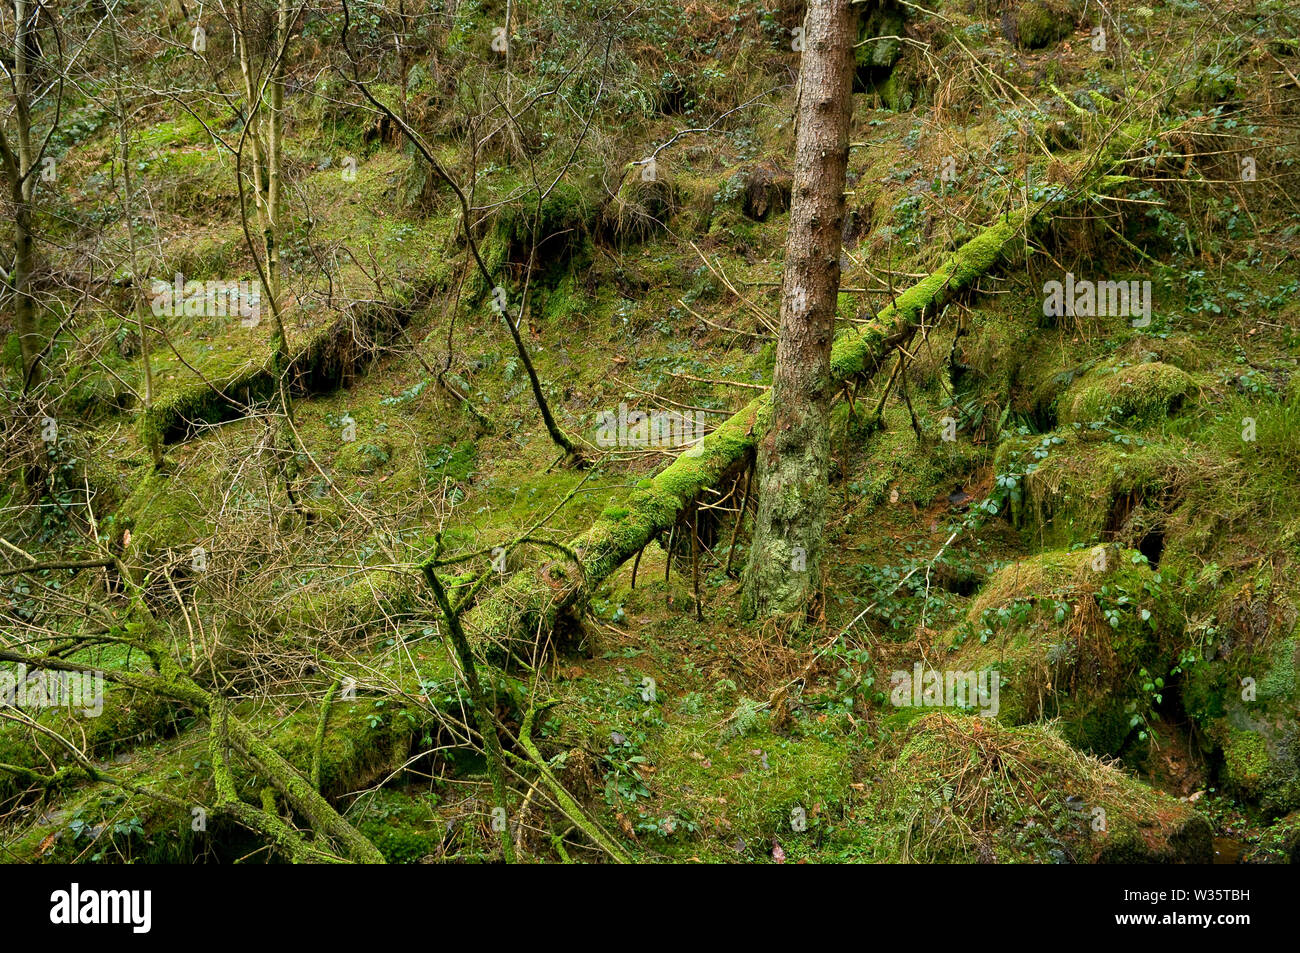 Collapsed pine trunk at Wyming Brook Gorge on the outskirts of Sheffield, South Yorkshire. Stock Photo